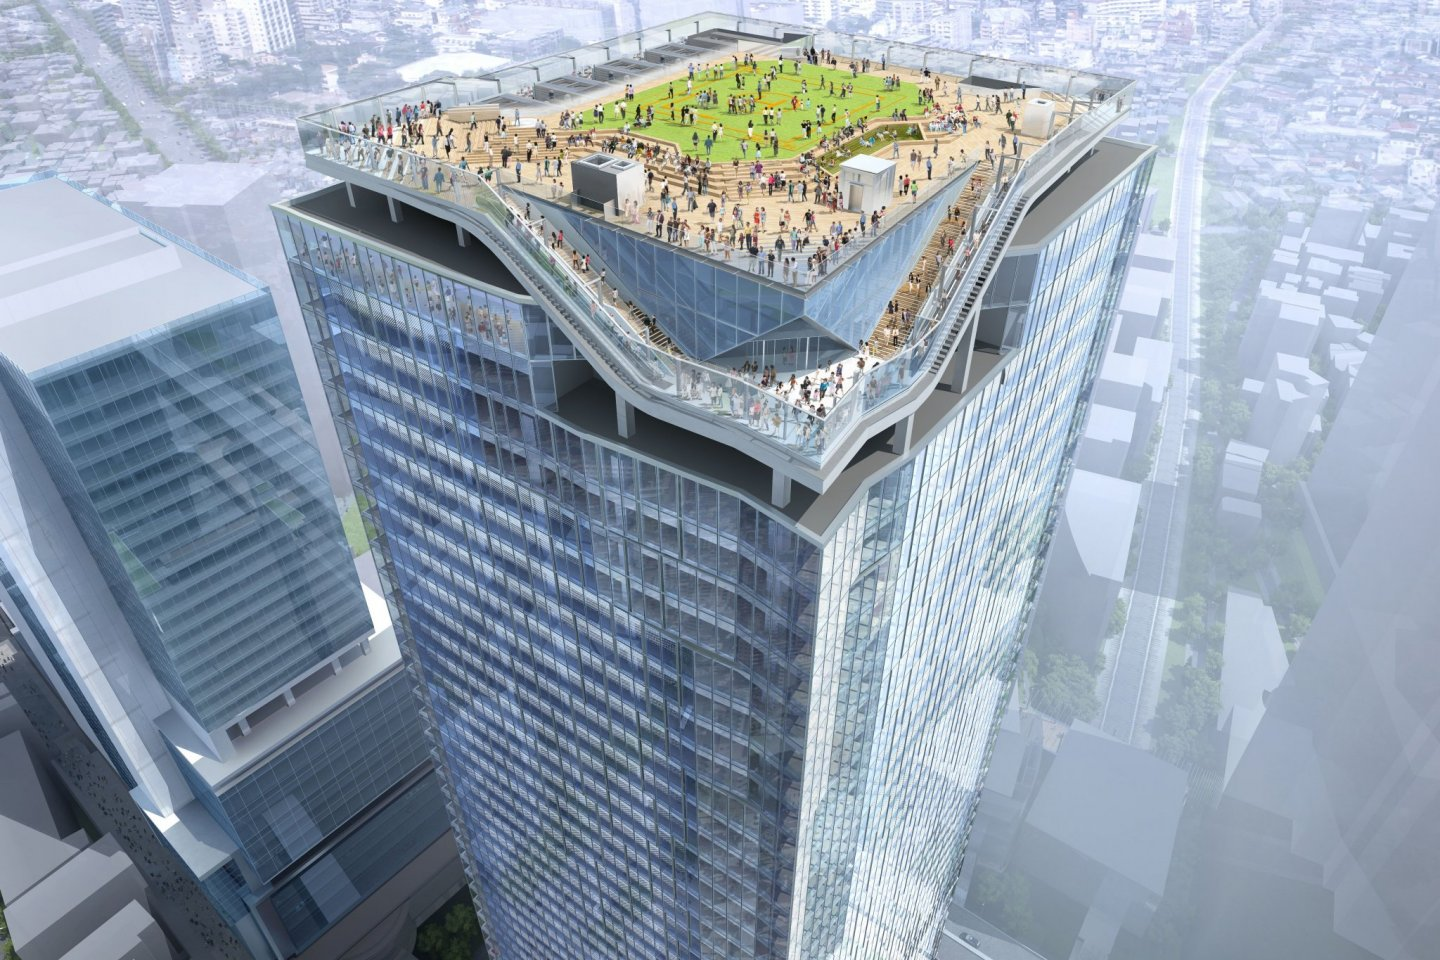 Above the clouds - the Shibuya Sky observation deck spanning three floors opens in Nov 2019